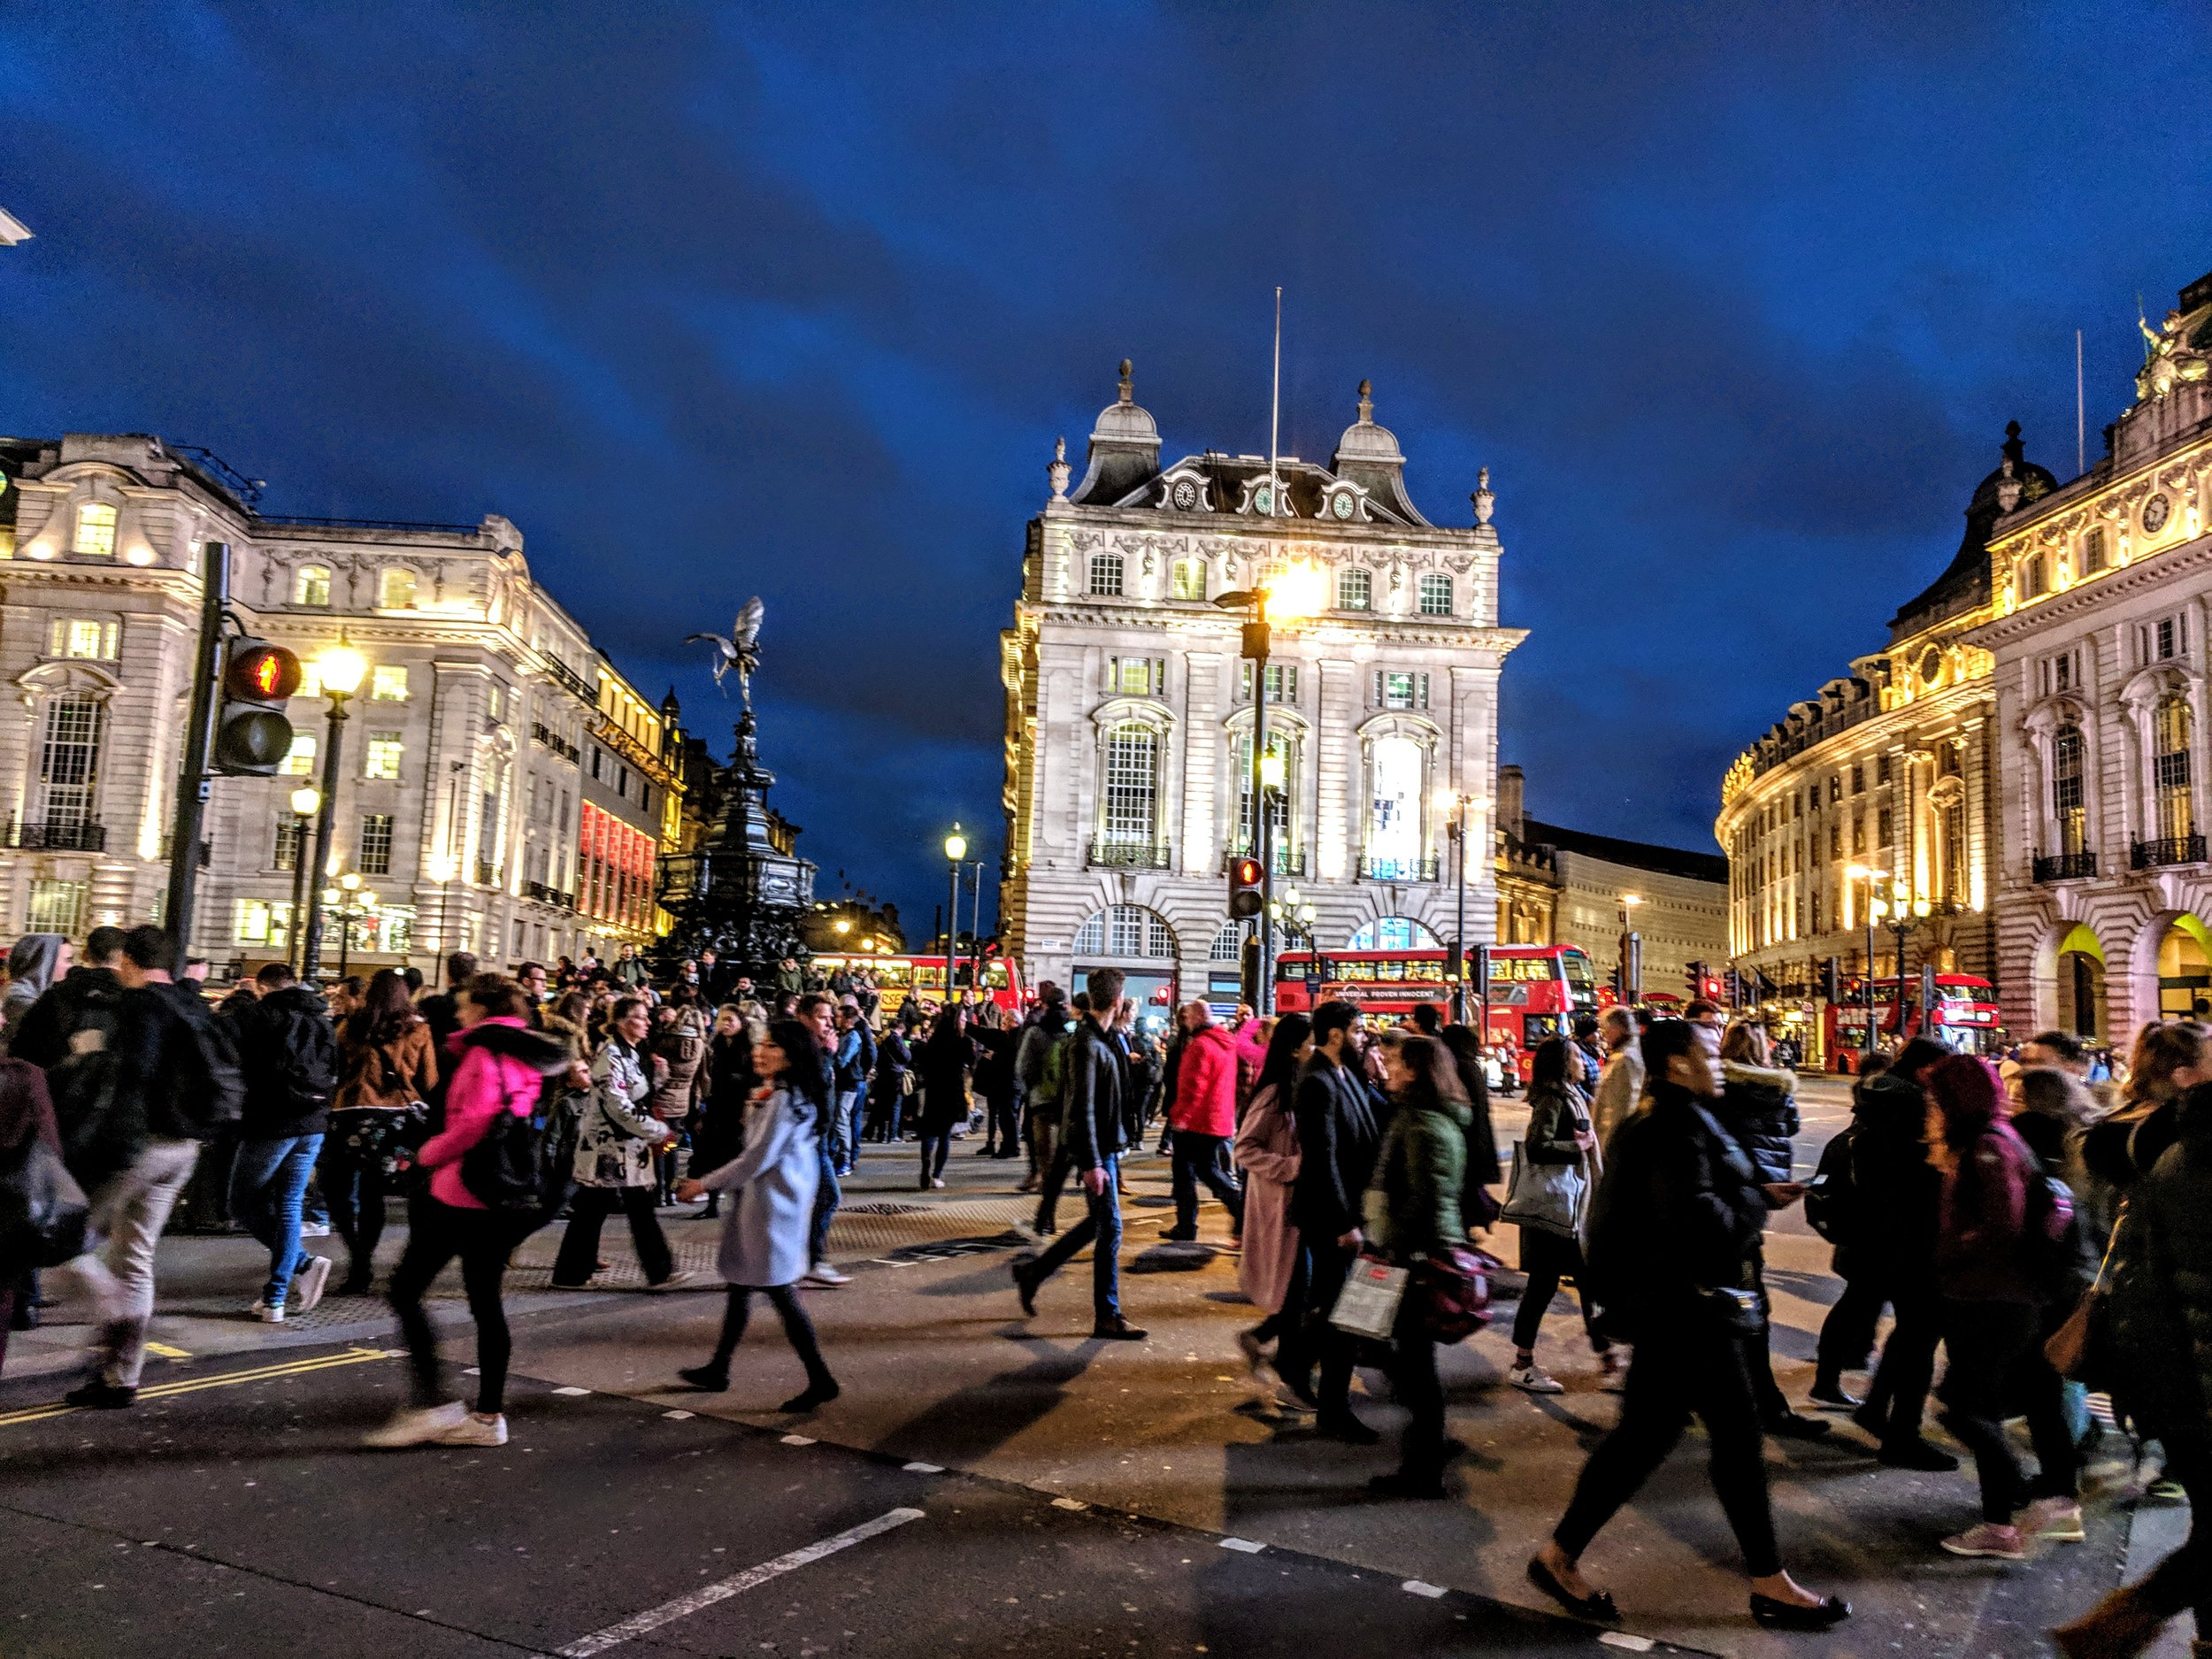 Piccadilly Circus on a weekend night. Pic taken on my Google Pixel phone in Mar 2019.  In the 19th century, London was infamously filthy - it had choking, sooty fogs; the Thames River was thick with human sewage; and the streets were covered with mud.  London has since built from its past to being the leading financial center of the world (pre-Brexit) and one of the most visited cities in the world, with over 40 million visitors in 2018.  Your past doesn't determine you. My past work doesn't determine me. My present and future do.